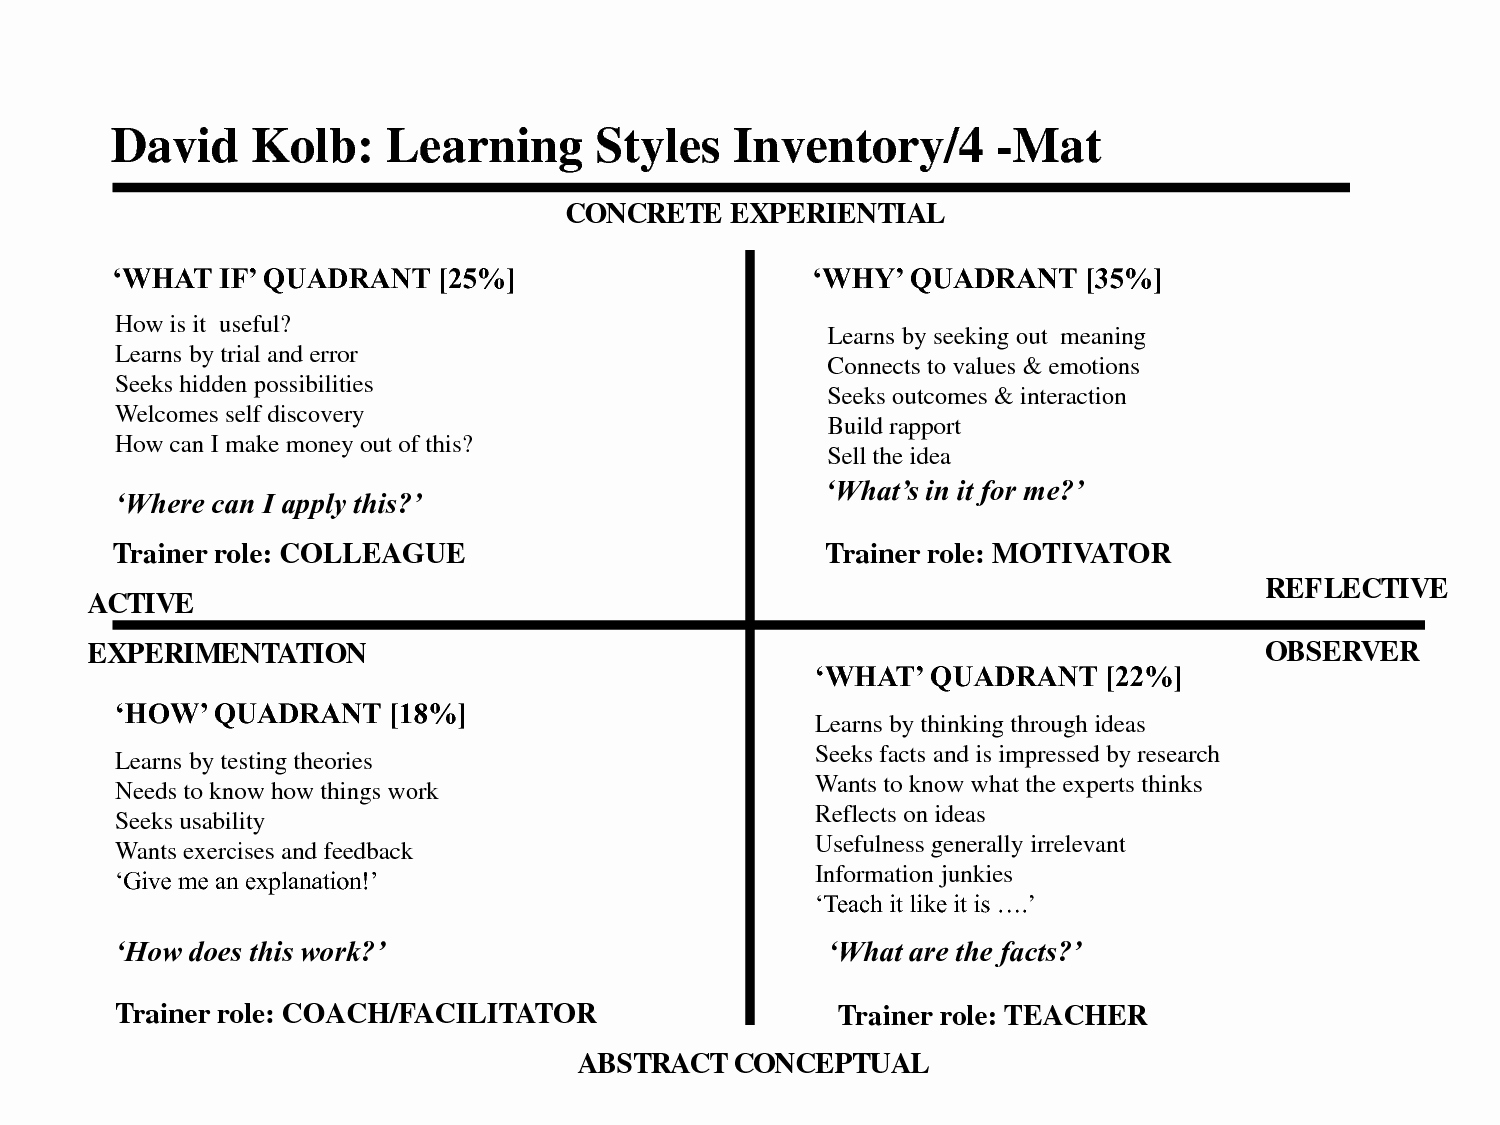 21st Century Lesson Plan Template Awesome 4mat Lesson Plan Template Google Search